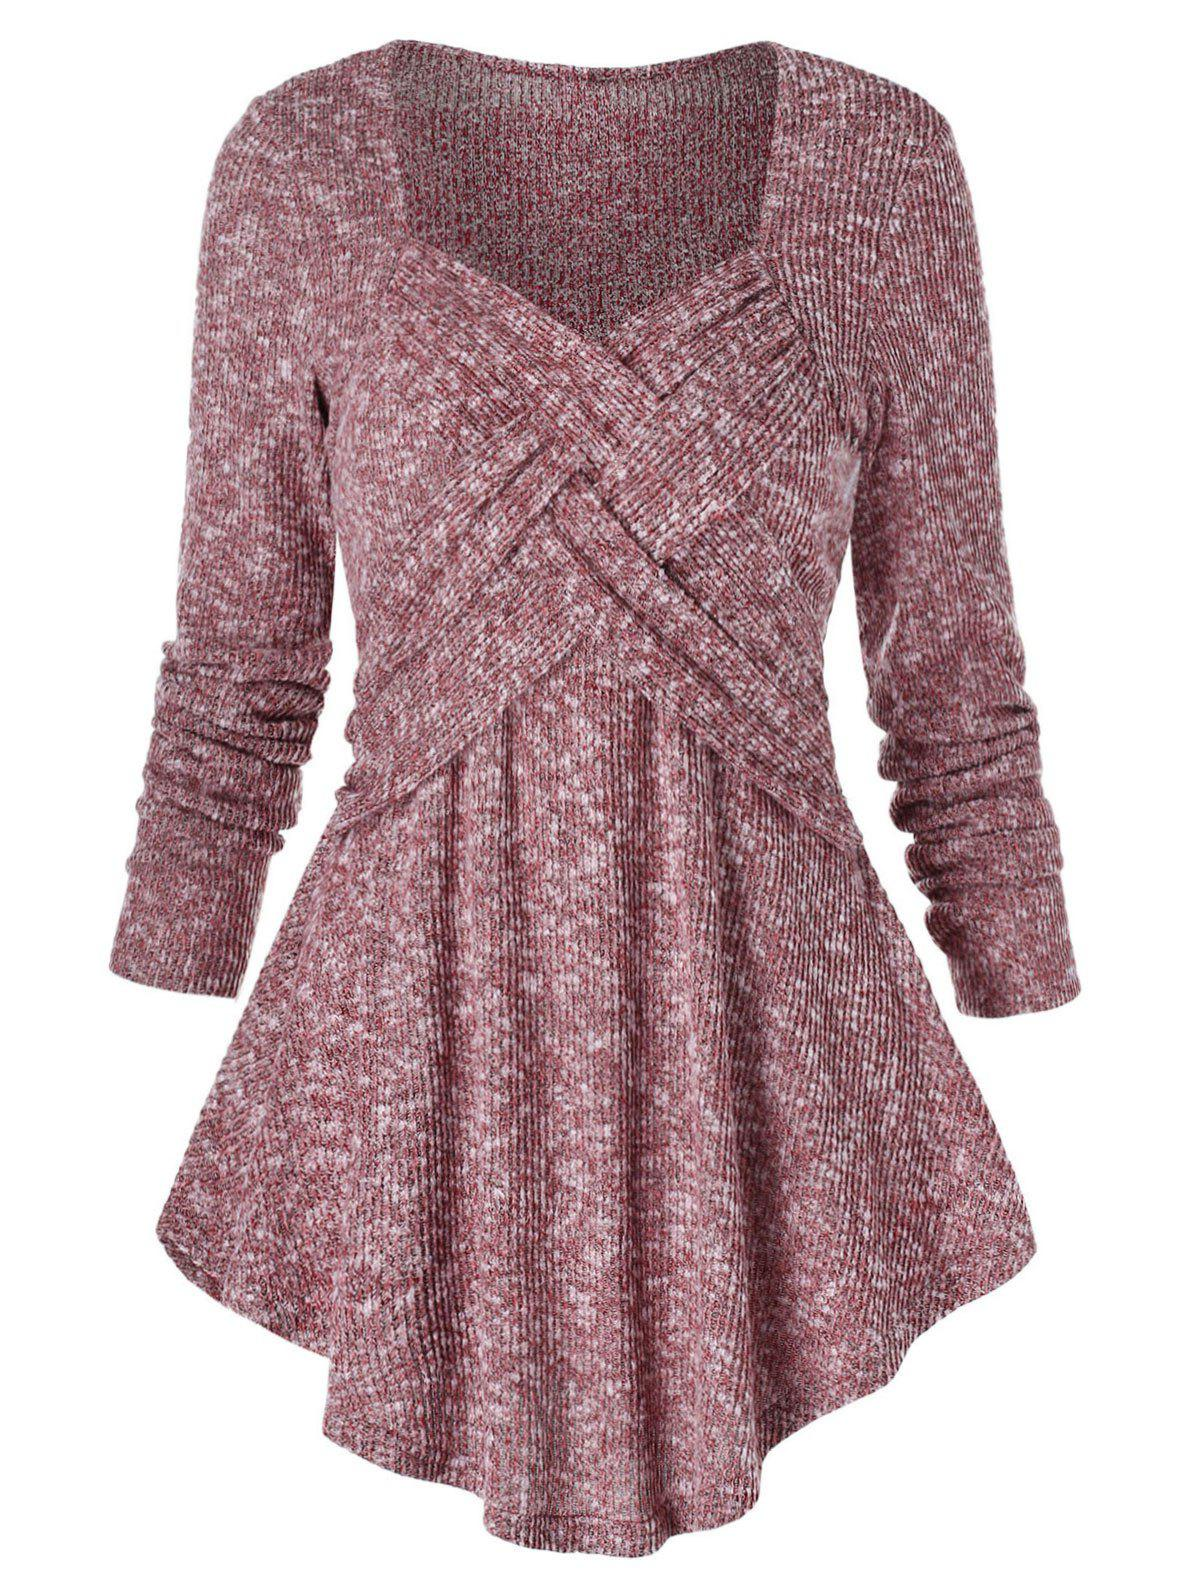 Sweetheart Neck Marled Tunic Sweater - BEAN RED 3XL